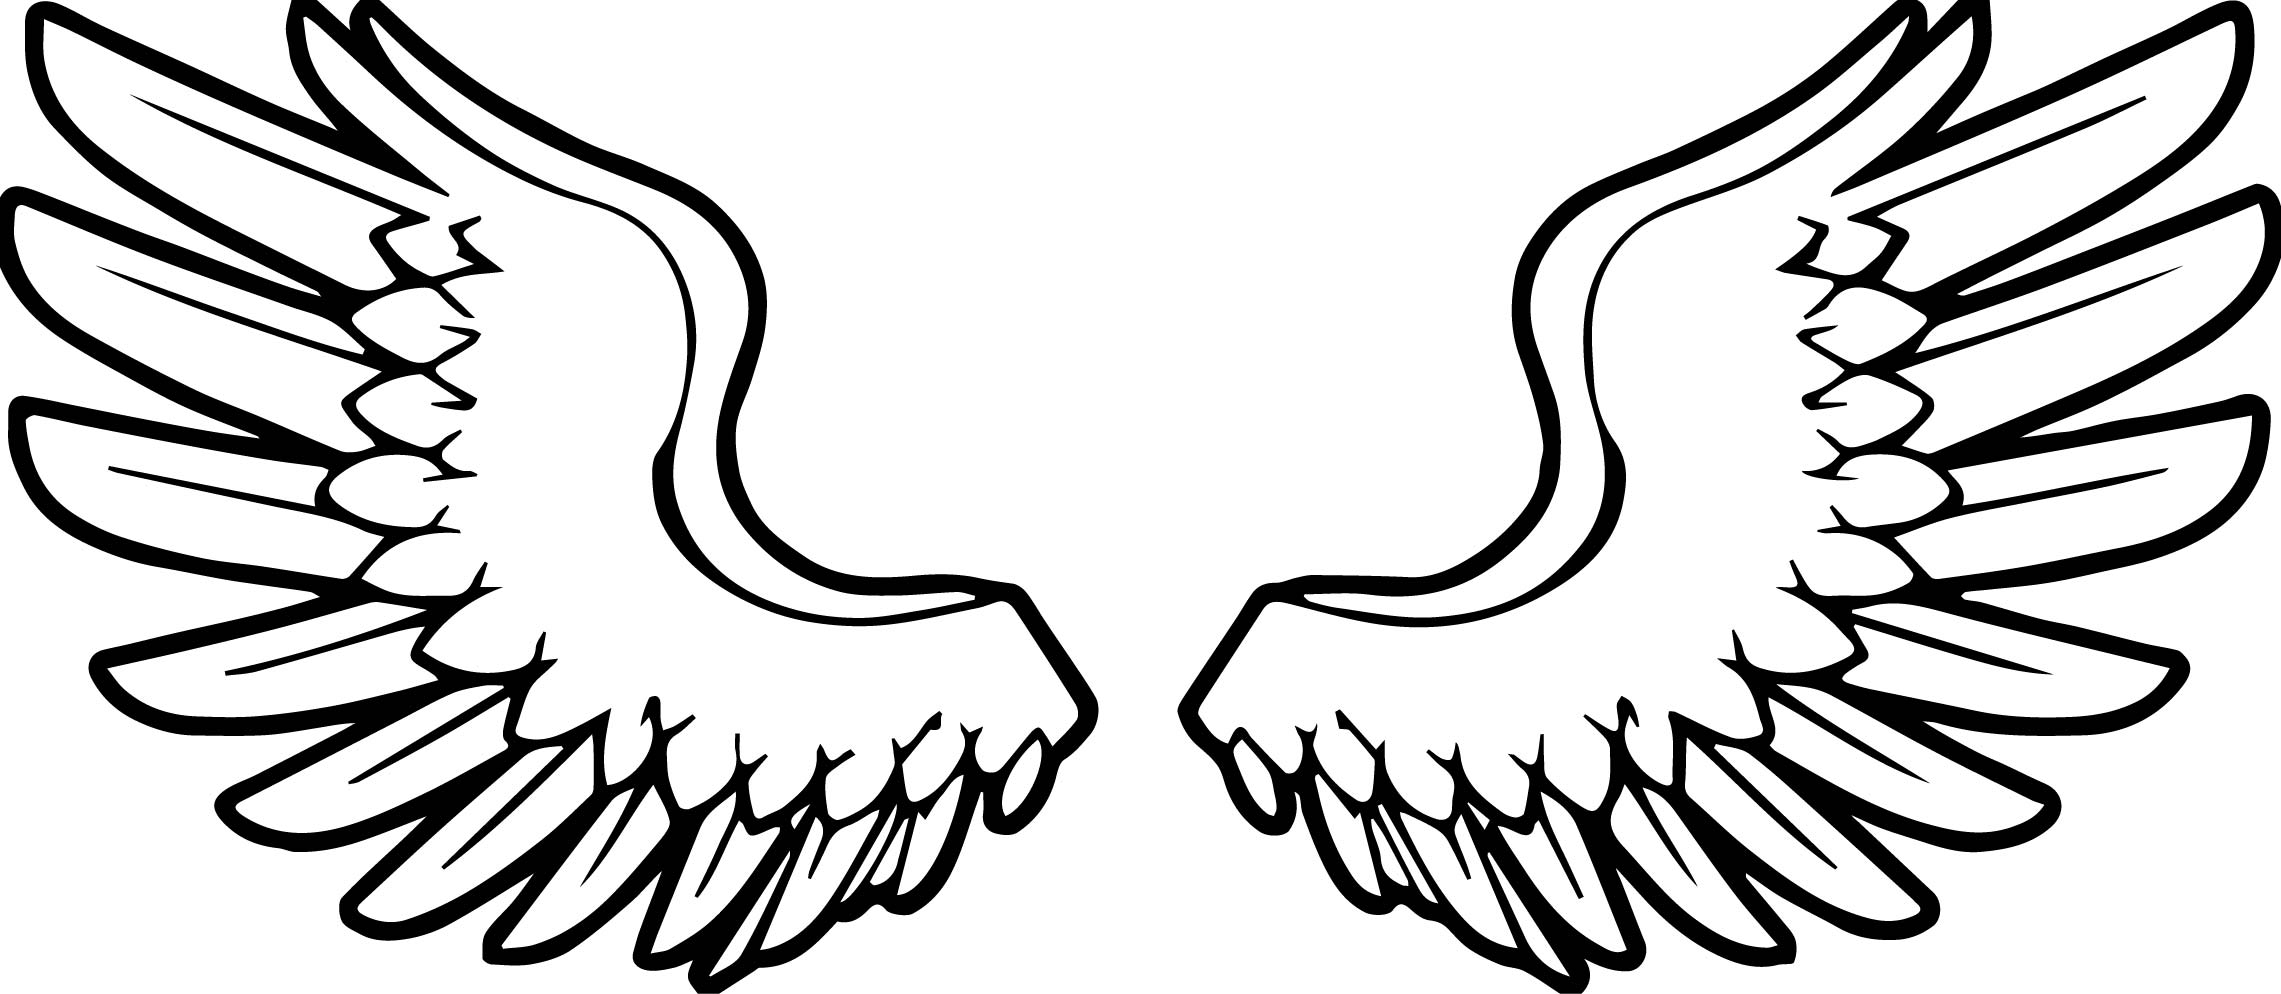 Uncategorized Angel Wings Coloring Pages angel wings coloring page wecoloringpage page